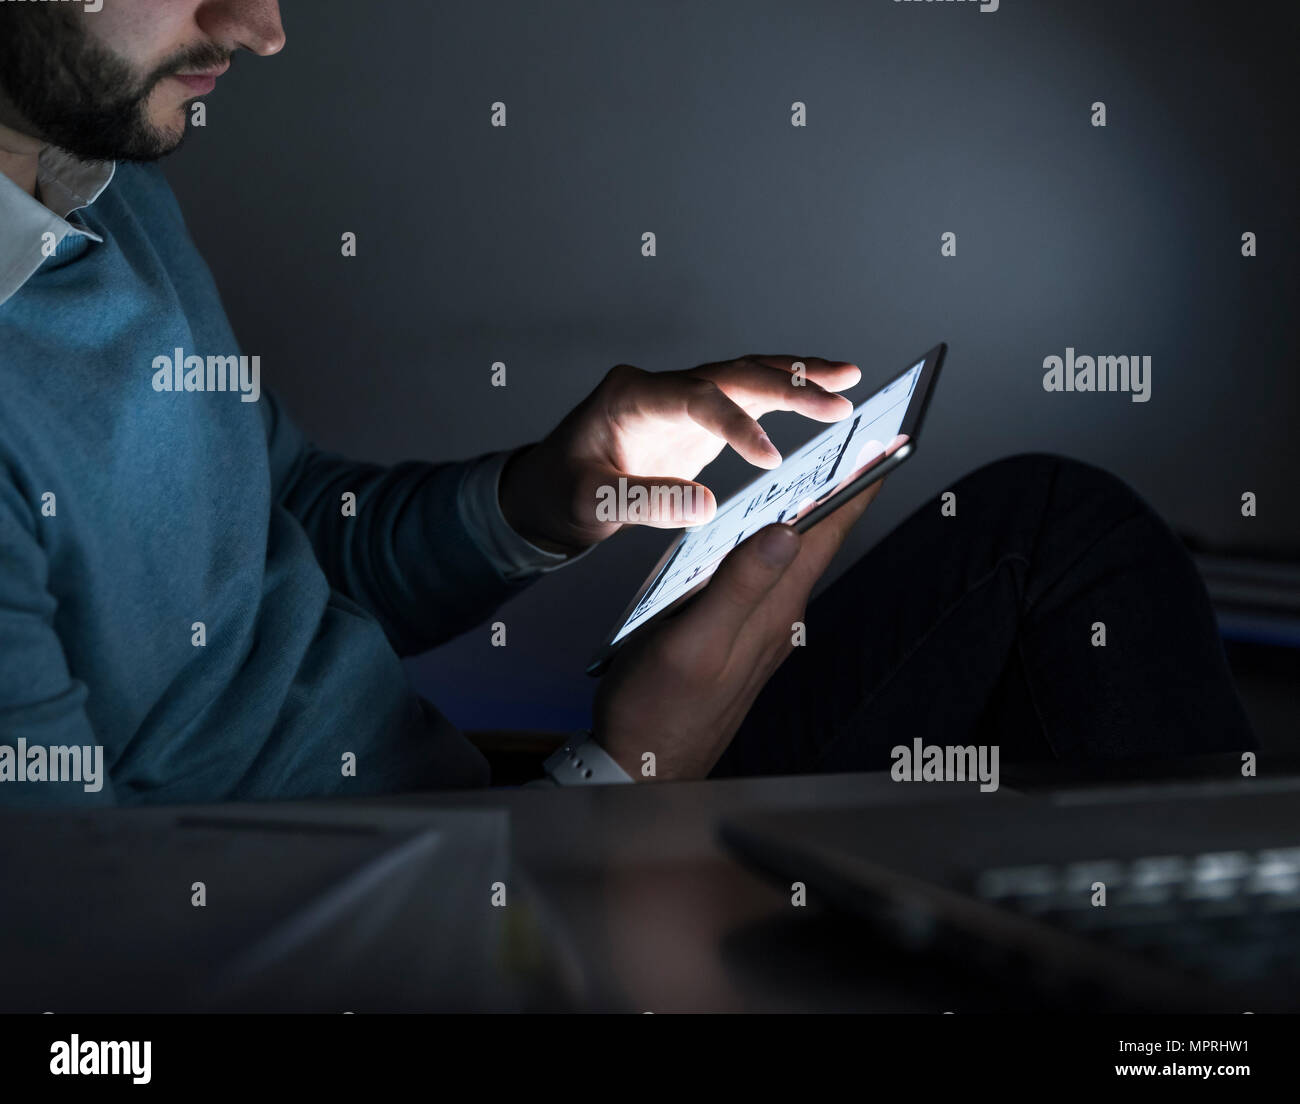 Businessman working on tablet in office at night, close-up - Stock Image